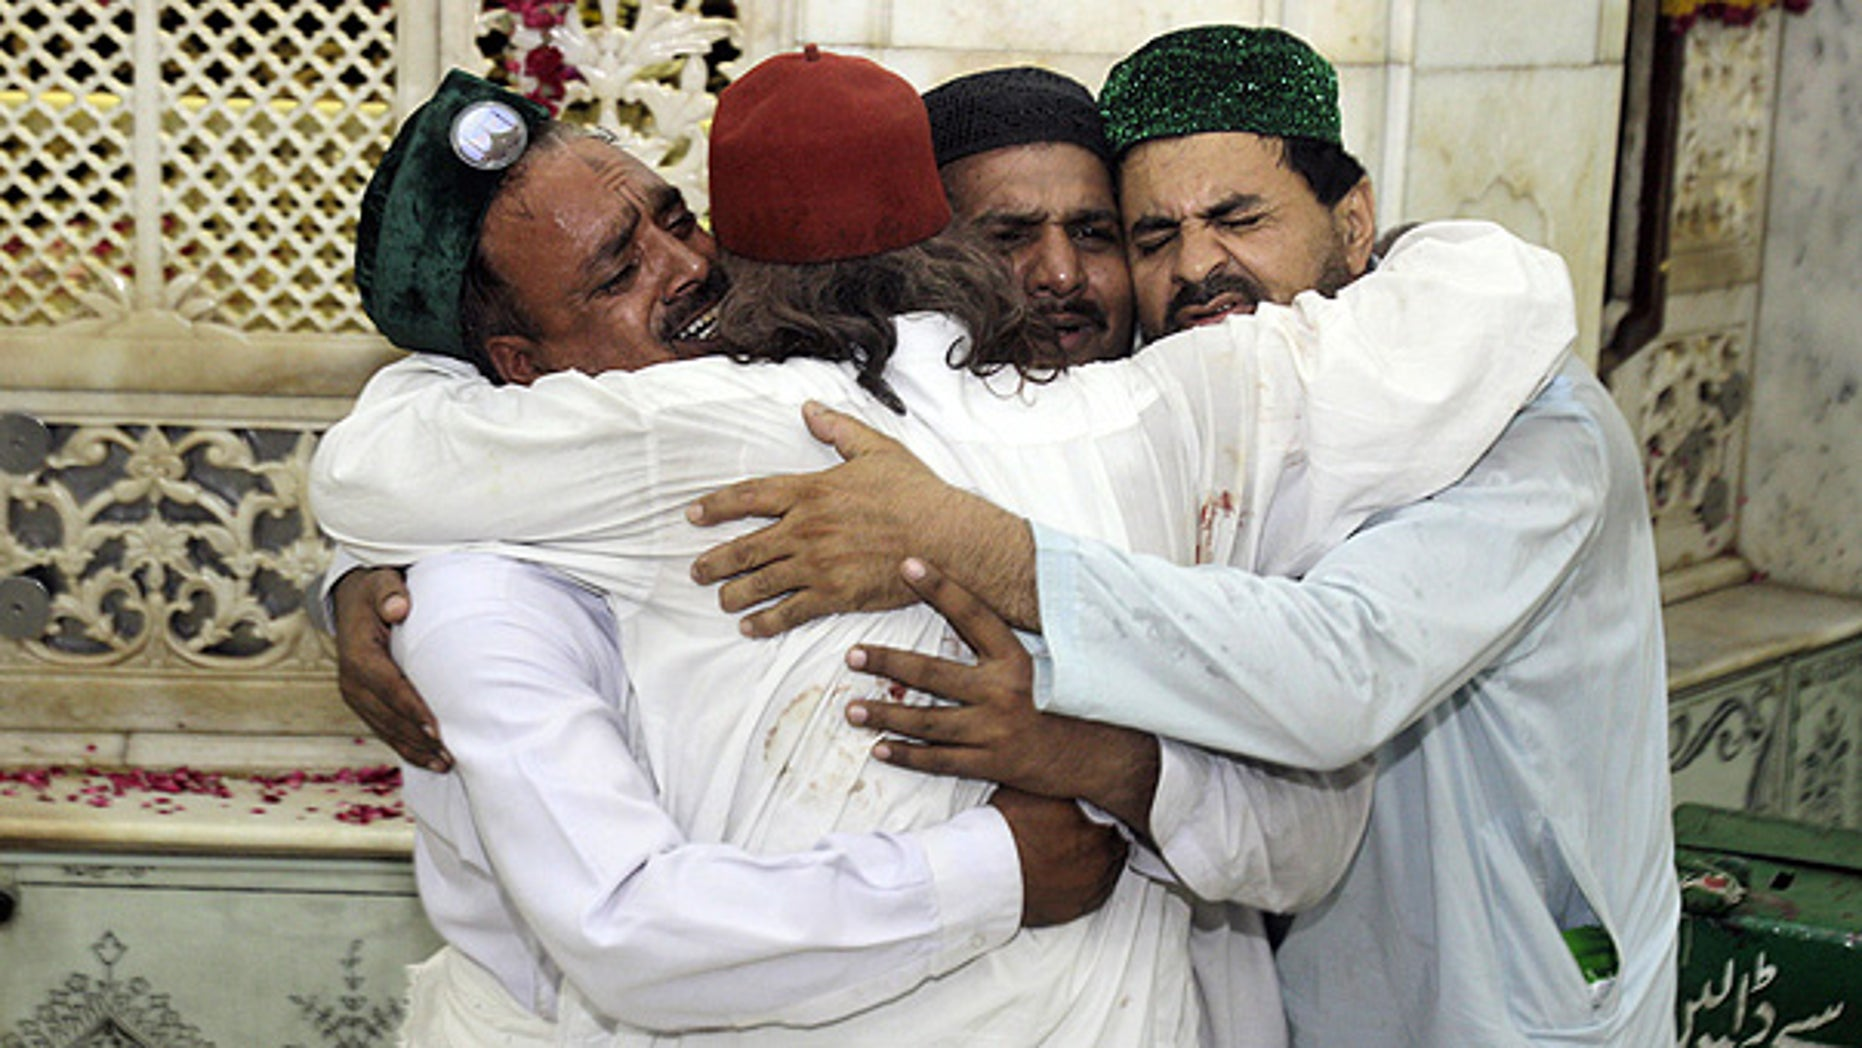 July 1: Family members of victims comfort one another after bombers attacked a popular Muslim shrine in Lahore, Pakistan.